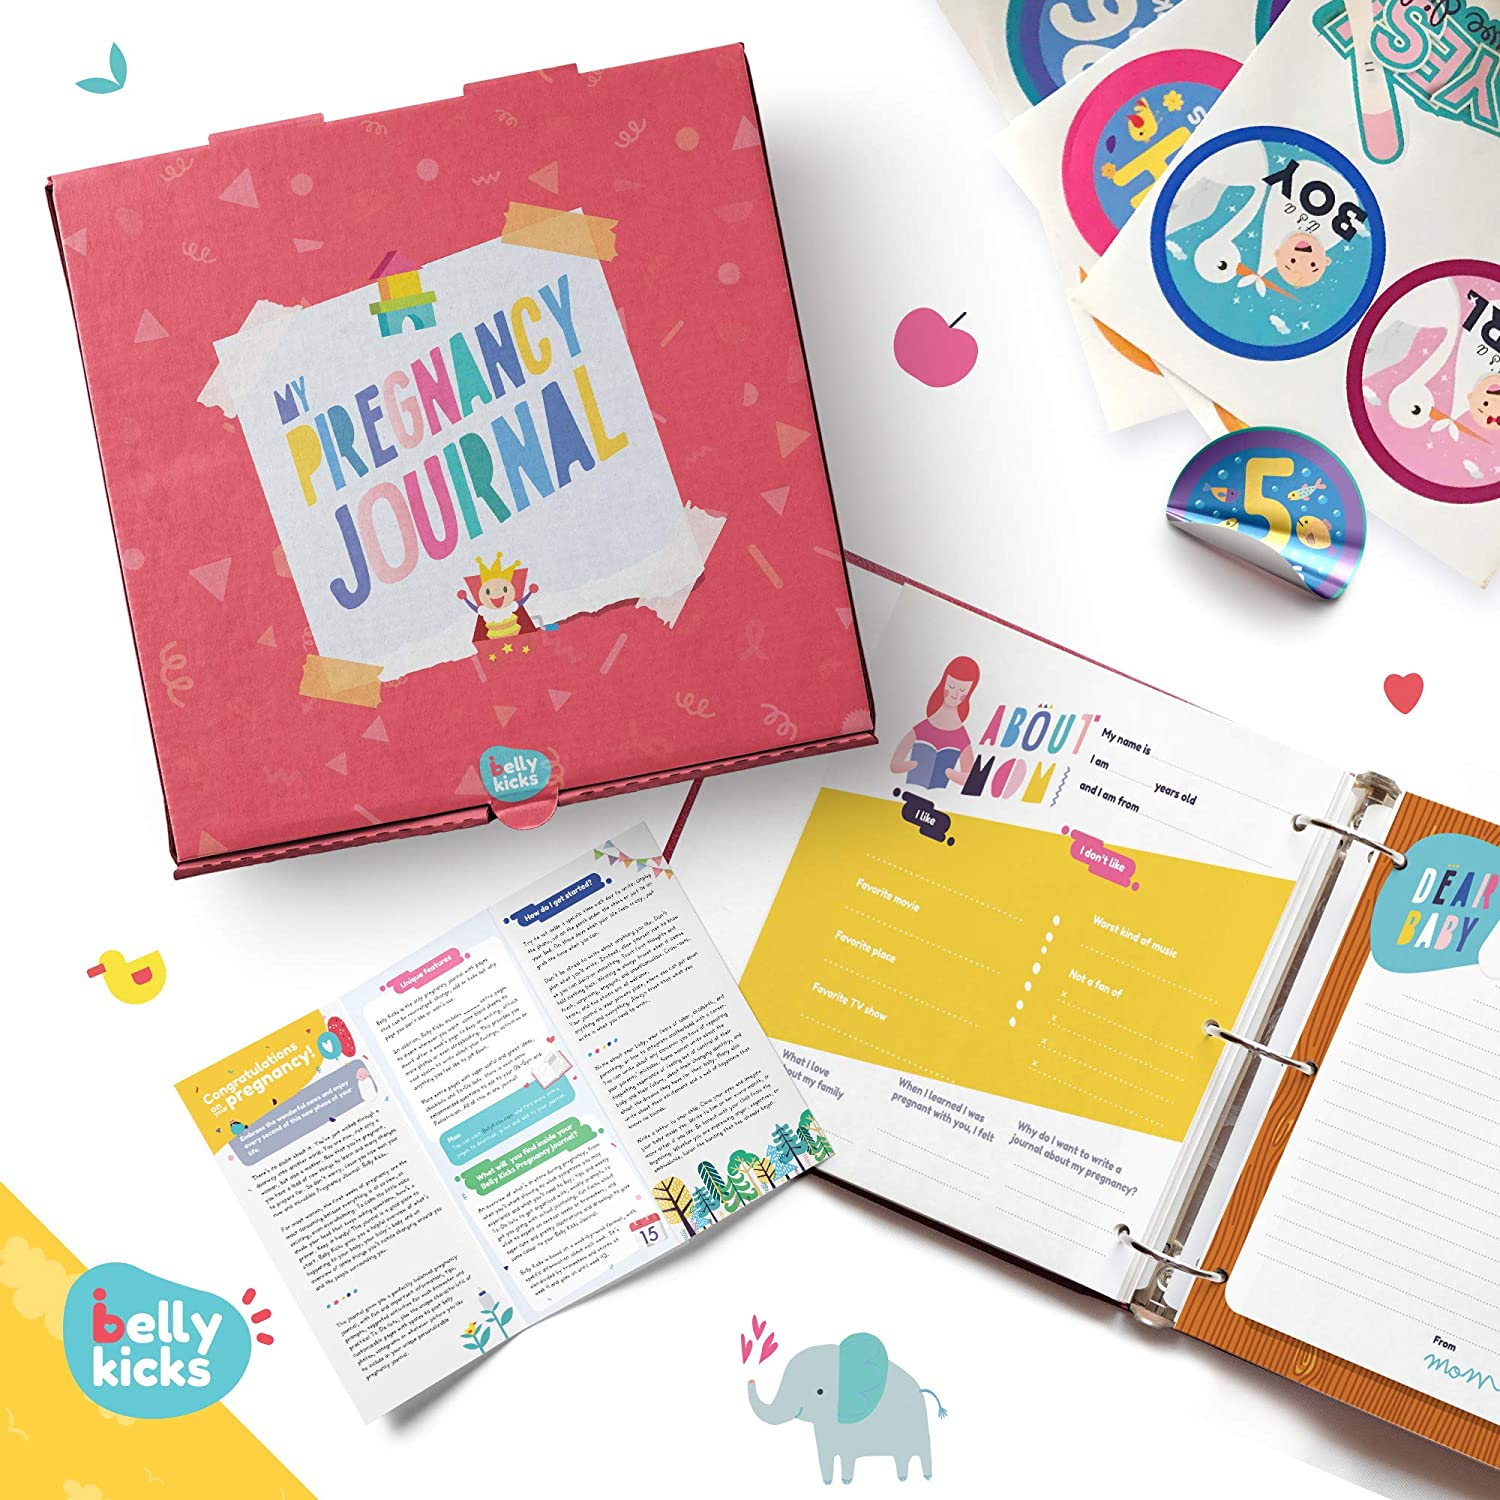 Weekly Pregnancy Journal with 40 Milestone Stickers, 120 Pages That Can Be Rearranged, Baby Memory Books and Journals Make Great Gifts for First Time Moms! Book Comes in A Binder and Keepsake Box Belly Kicks